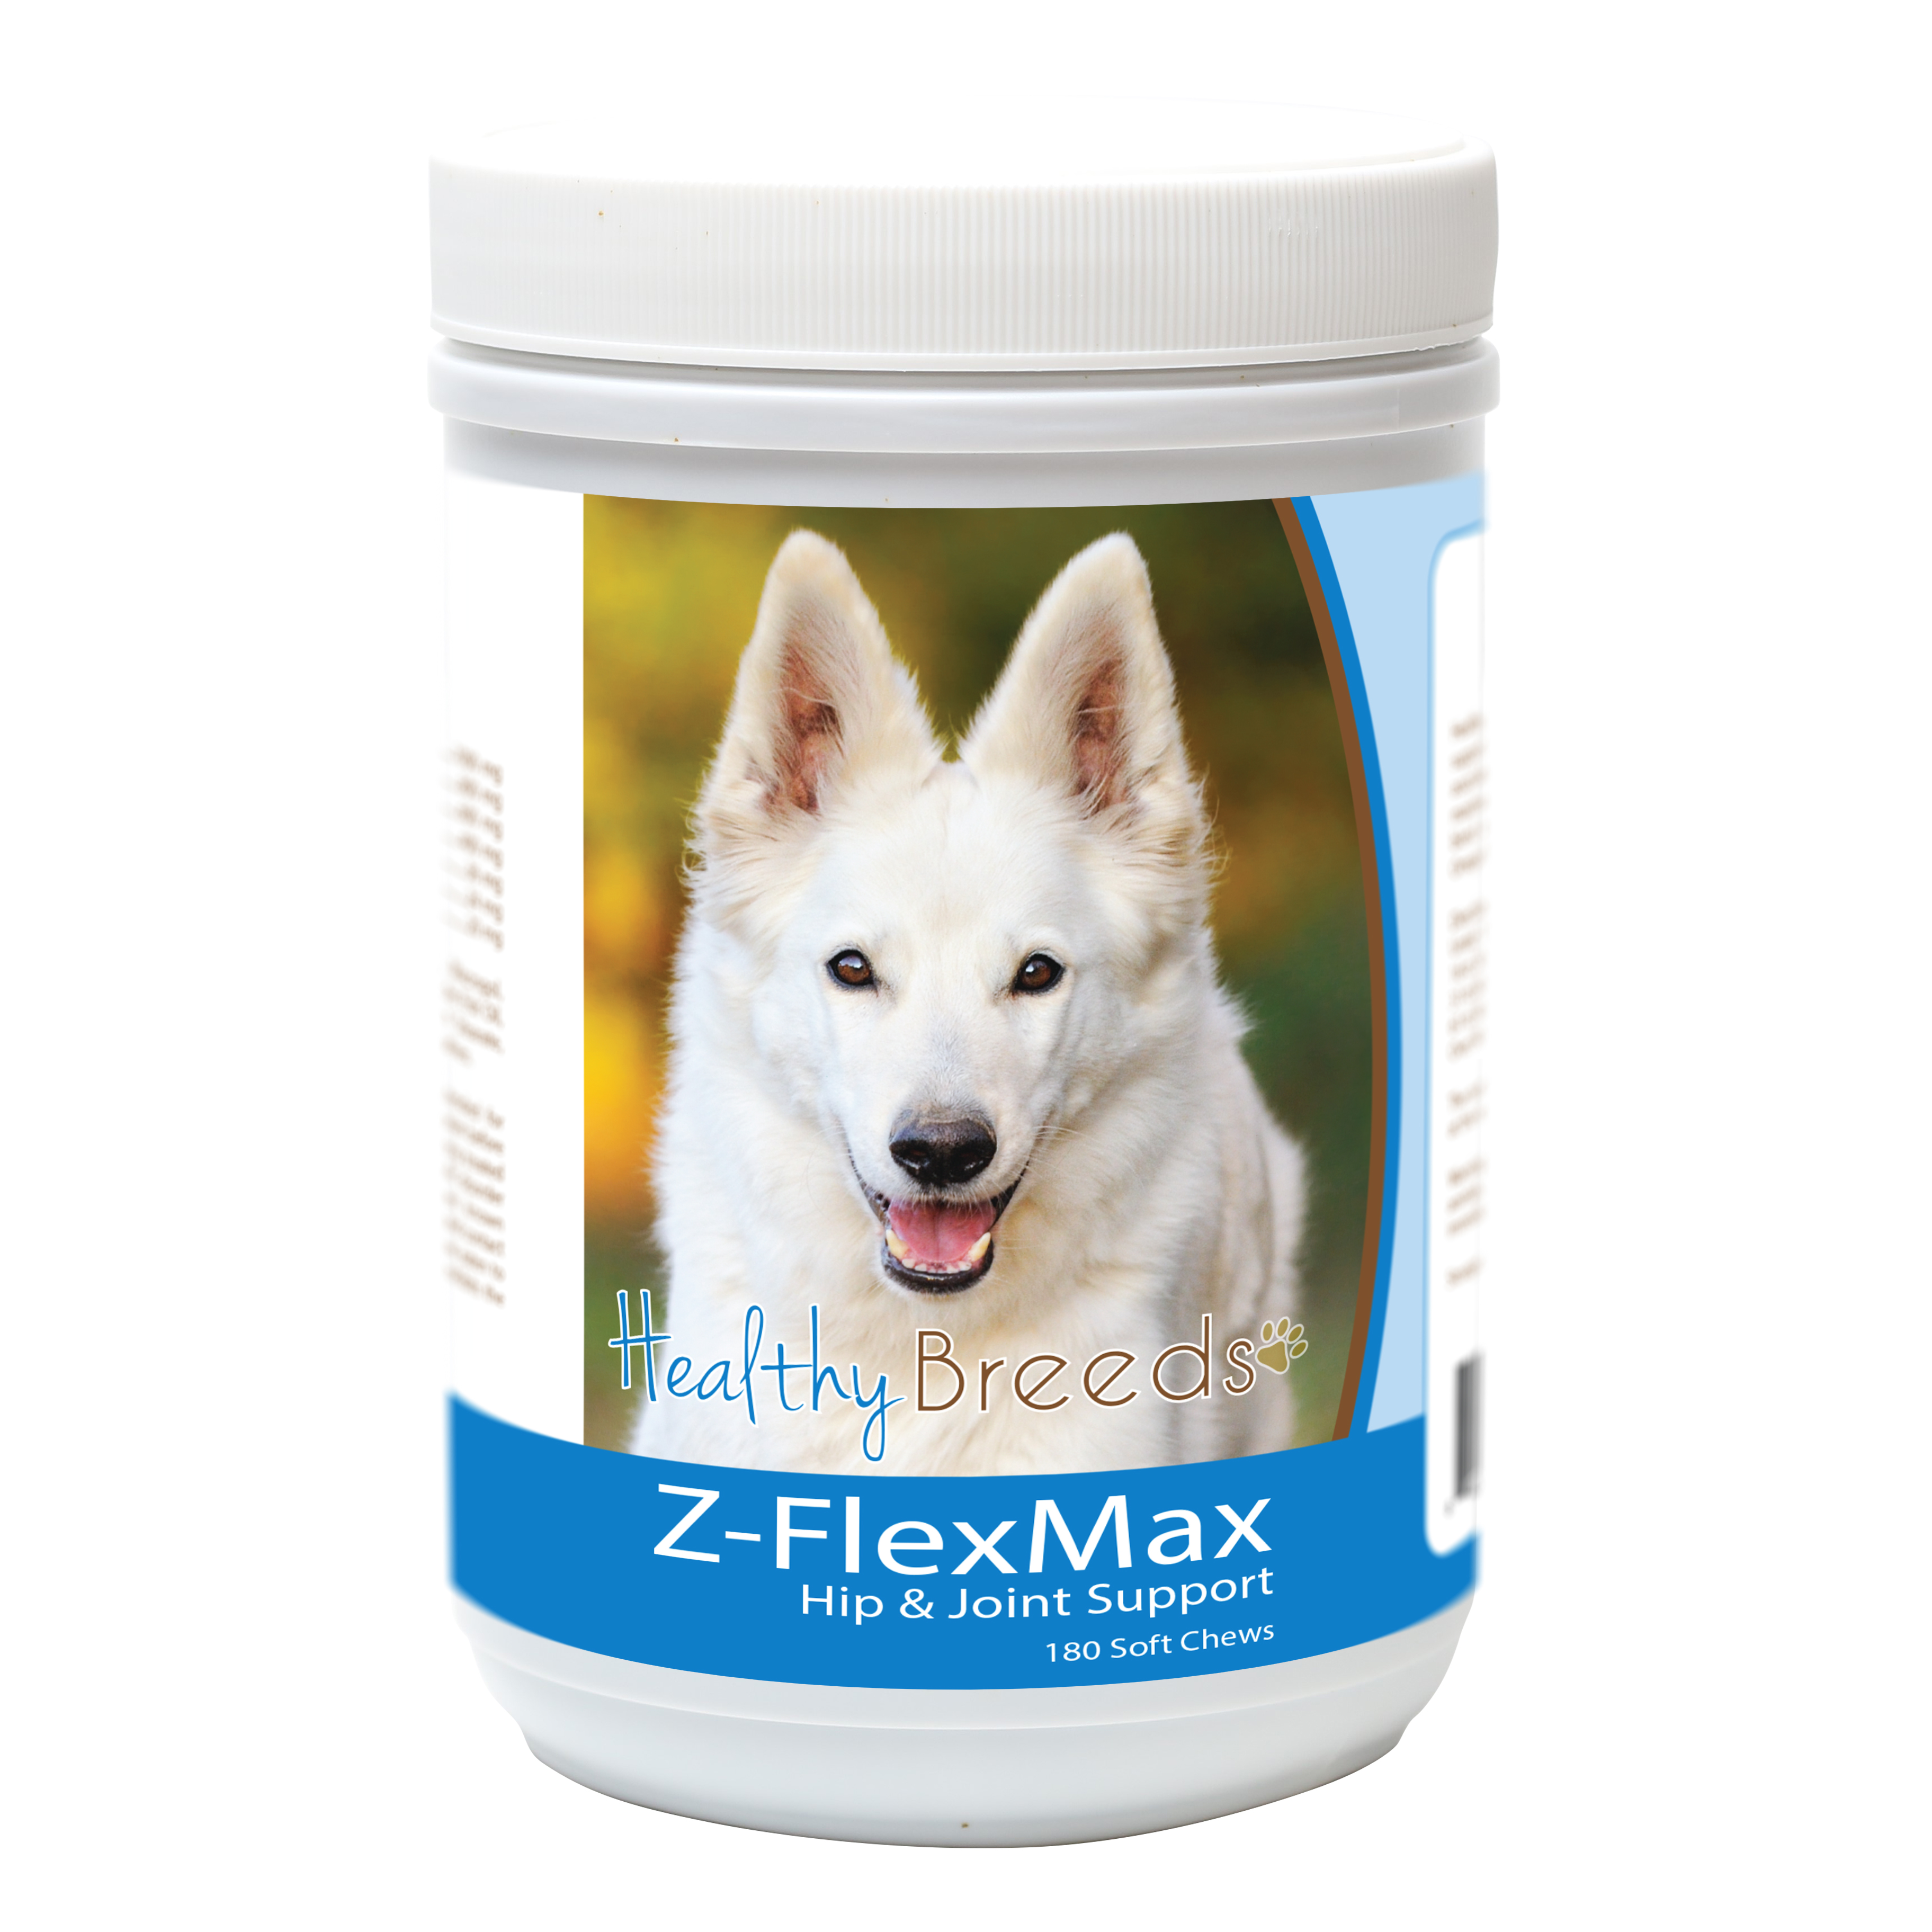 Healthy Breeds German Shepherd Z-Flex Max Dog Hip and Joint Support 180 Count